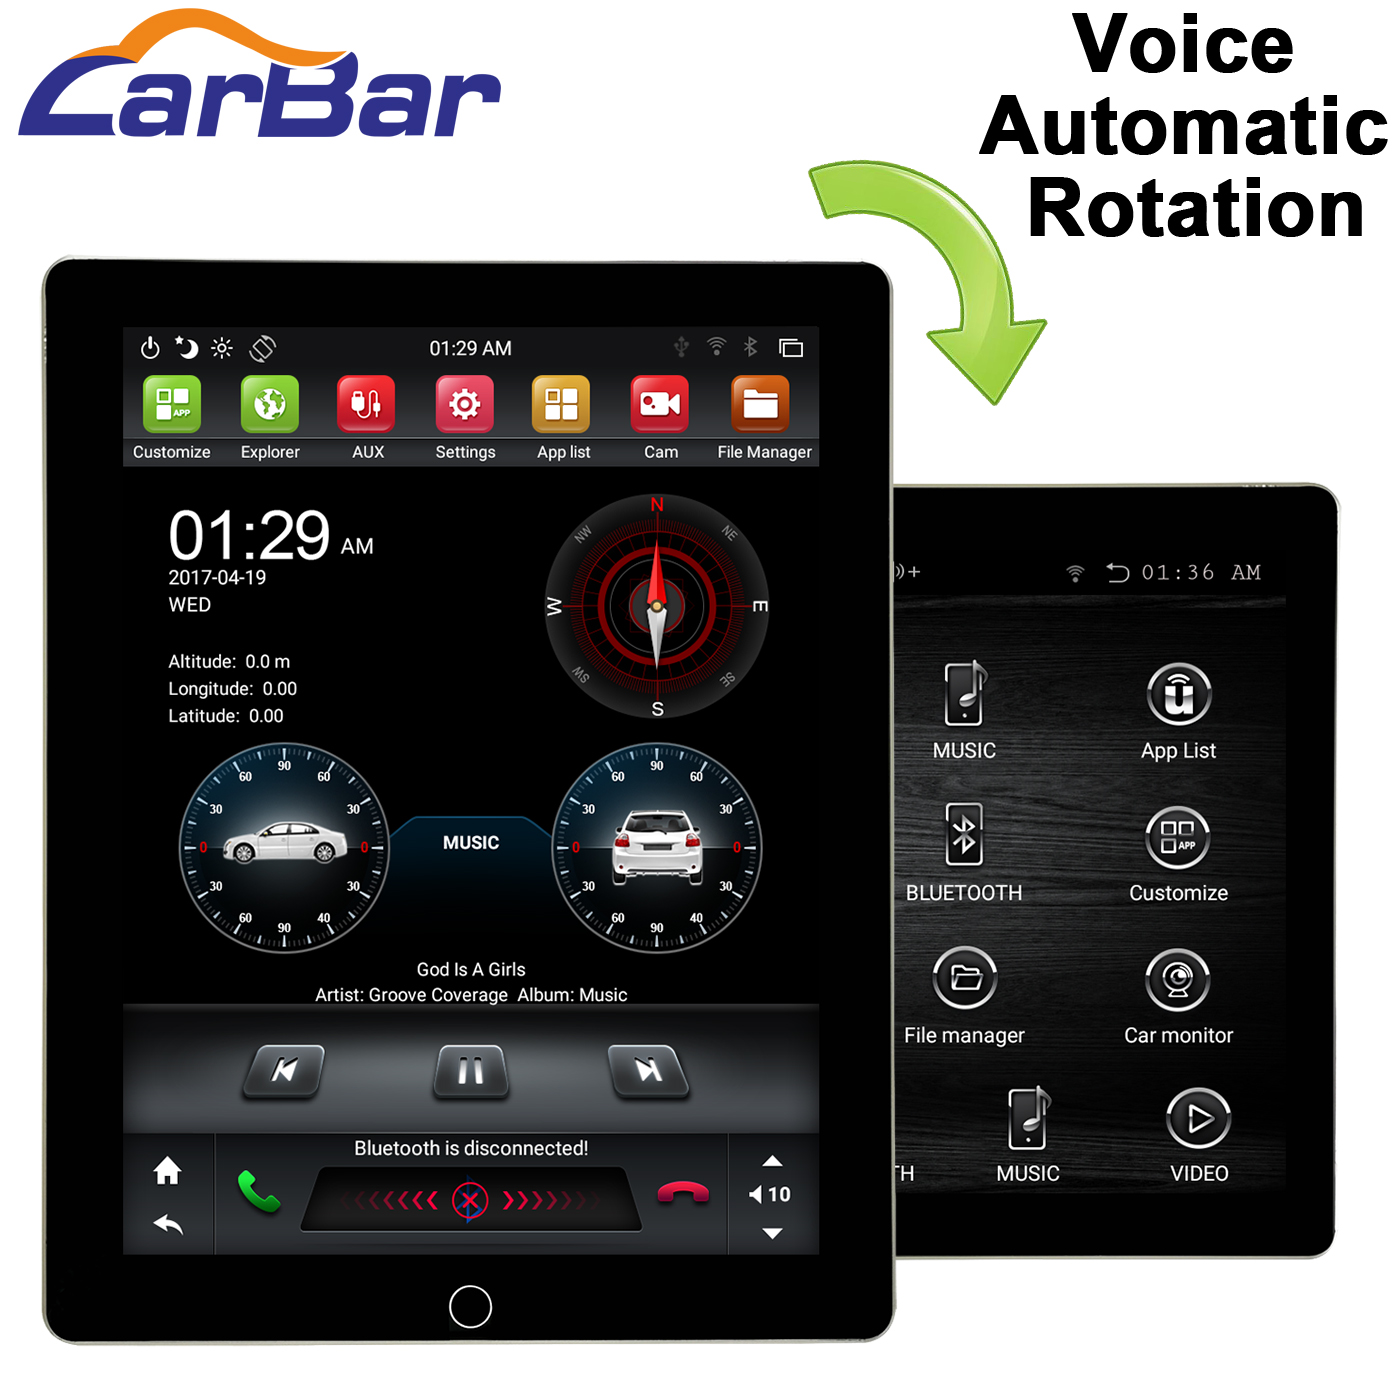 "Carbar 9.7"" Tesla Style Automatic Rotation IPS Screen 2 Din Universal Android Car DVD GPS Player Radio Car Stereo Voice Control"